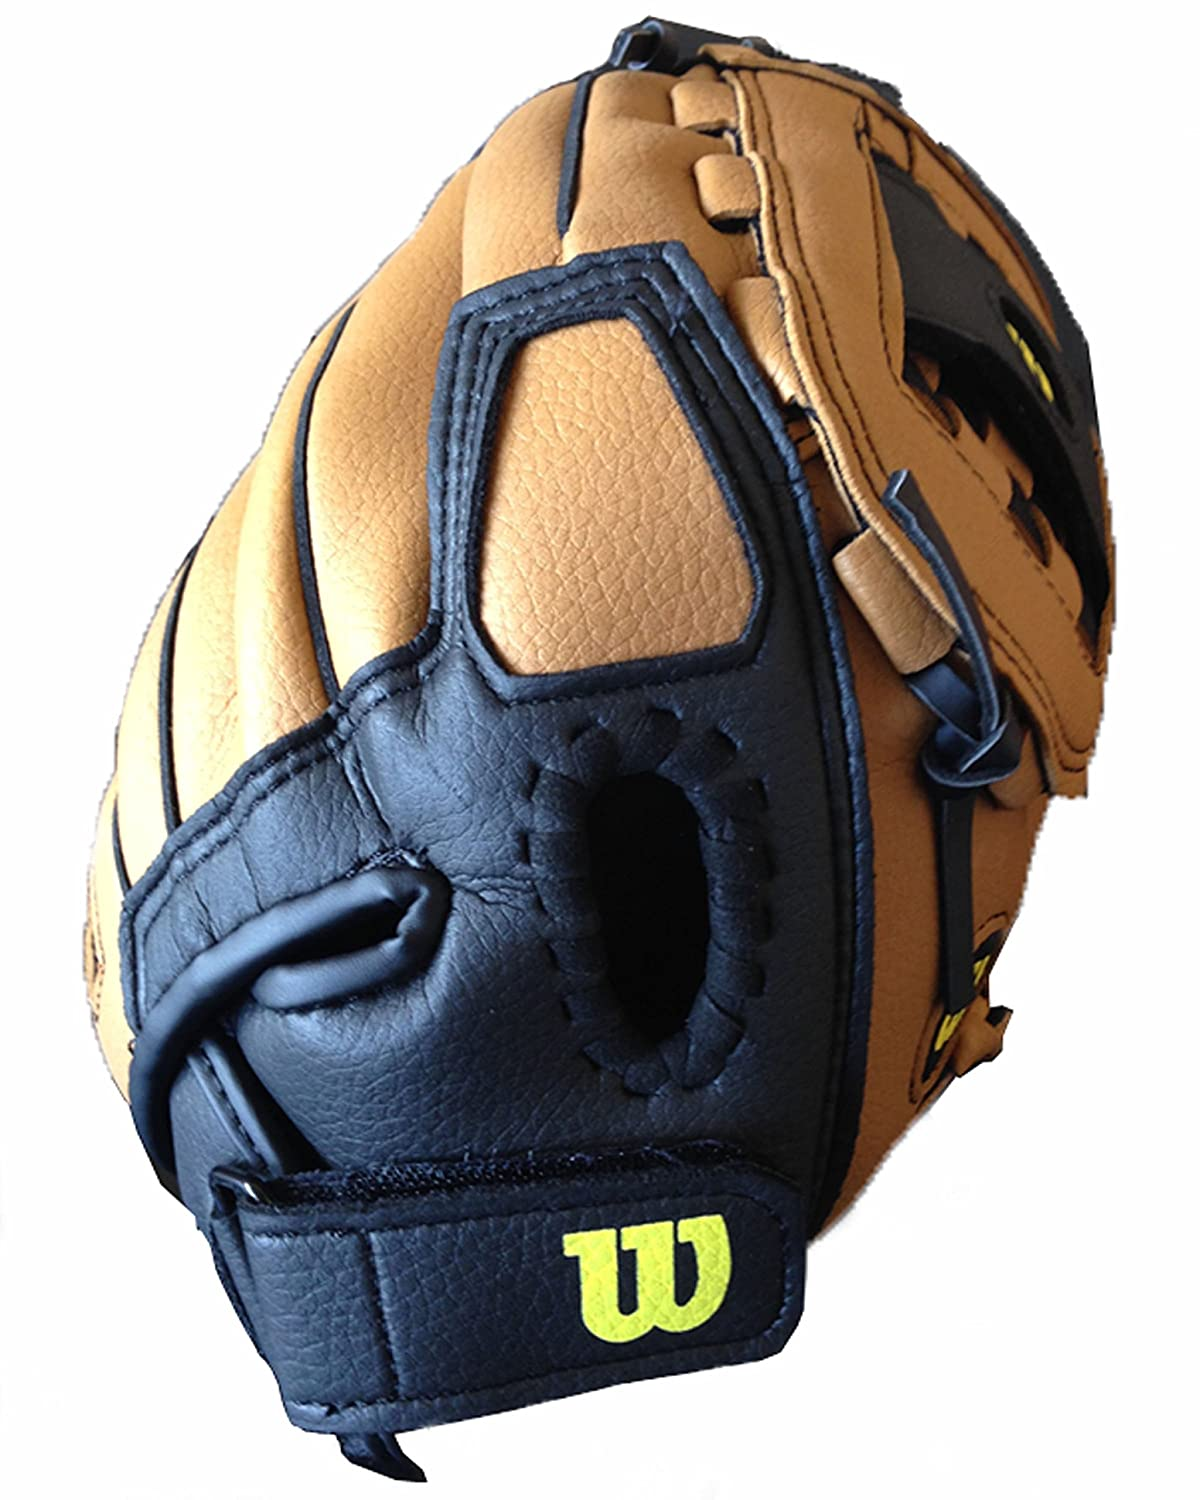 Wilson 11.5 Youth Baseball Glove